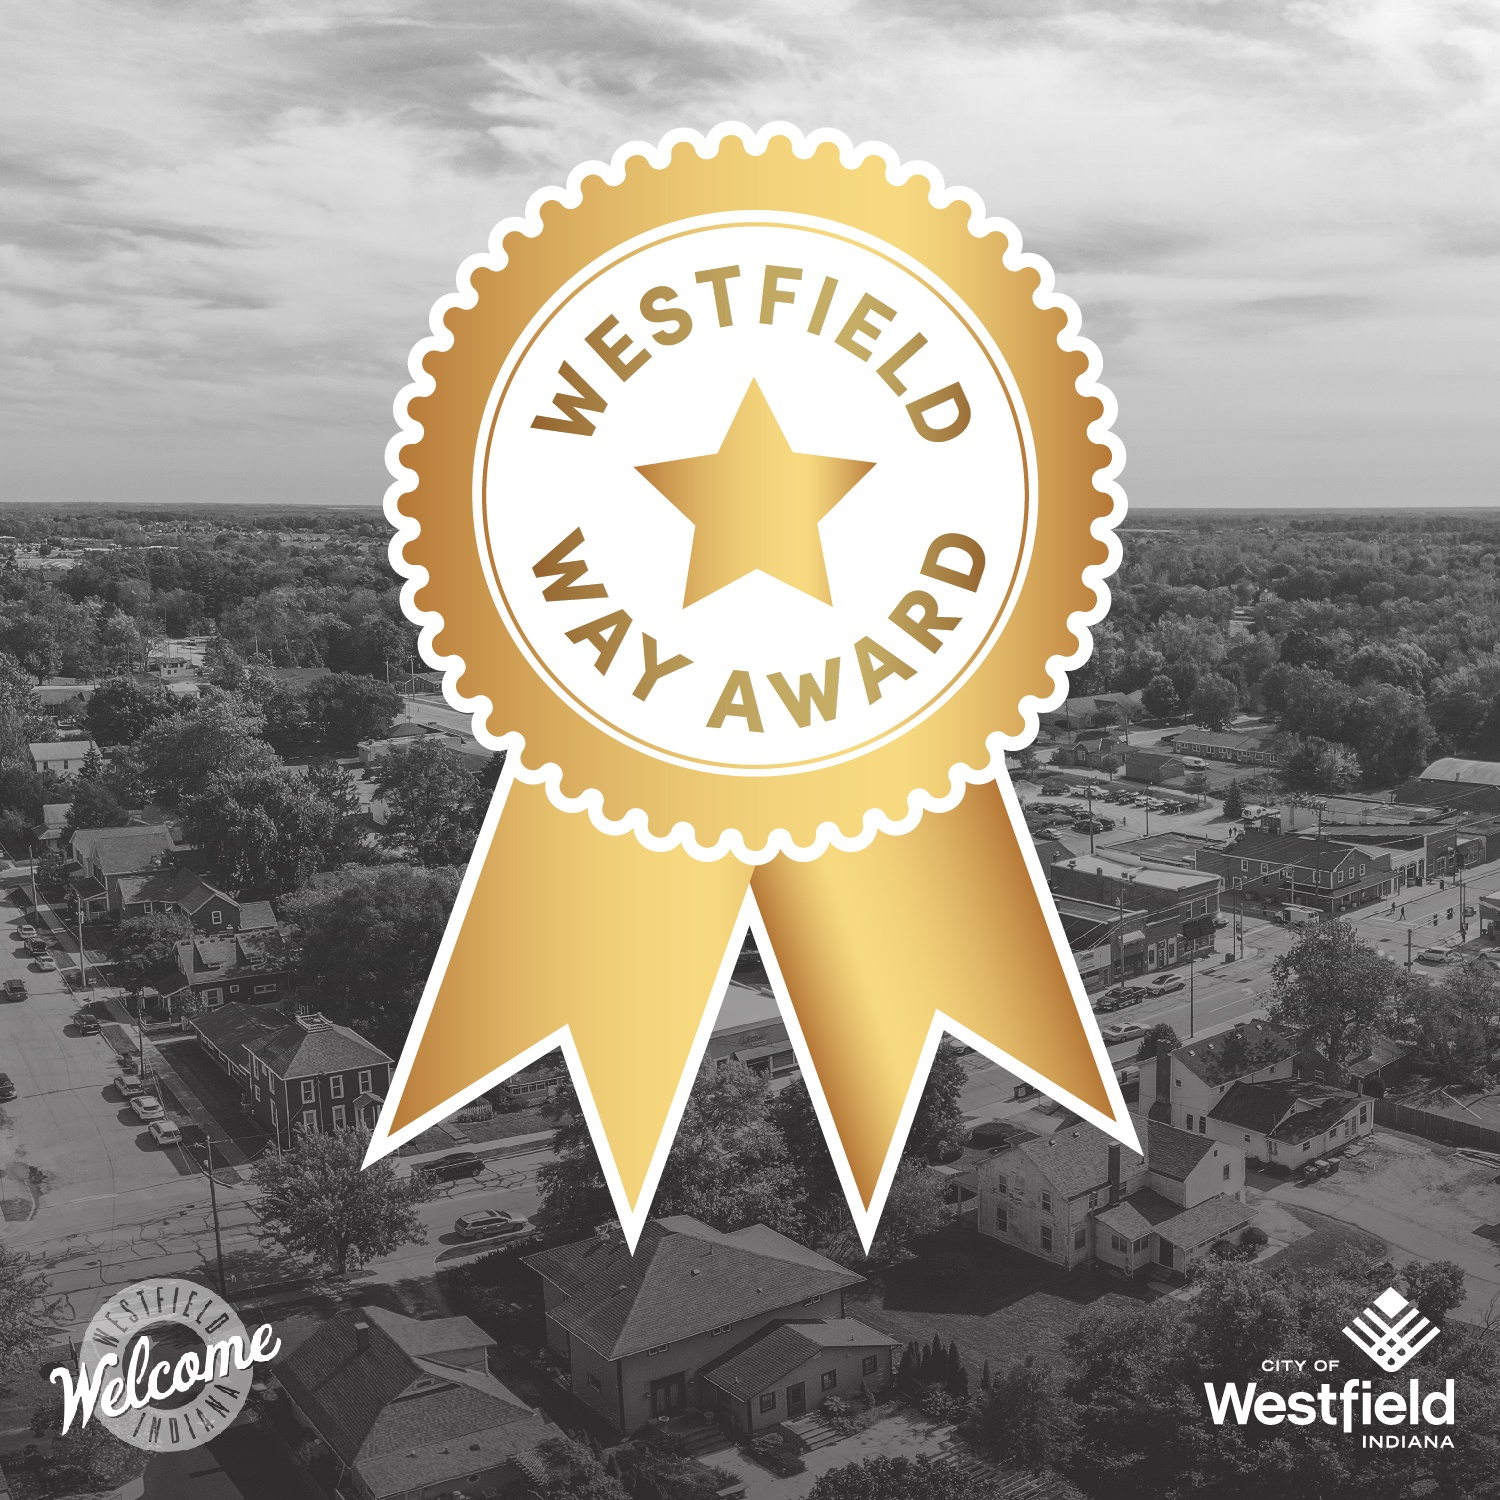 Photo for: NEWS RELEASE: City of Westfield to Launch Service Recognition Program